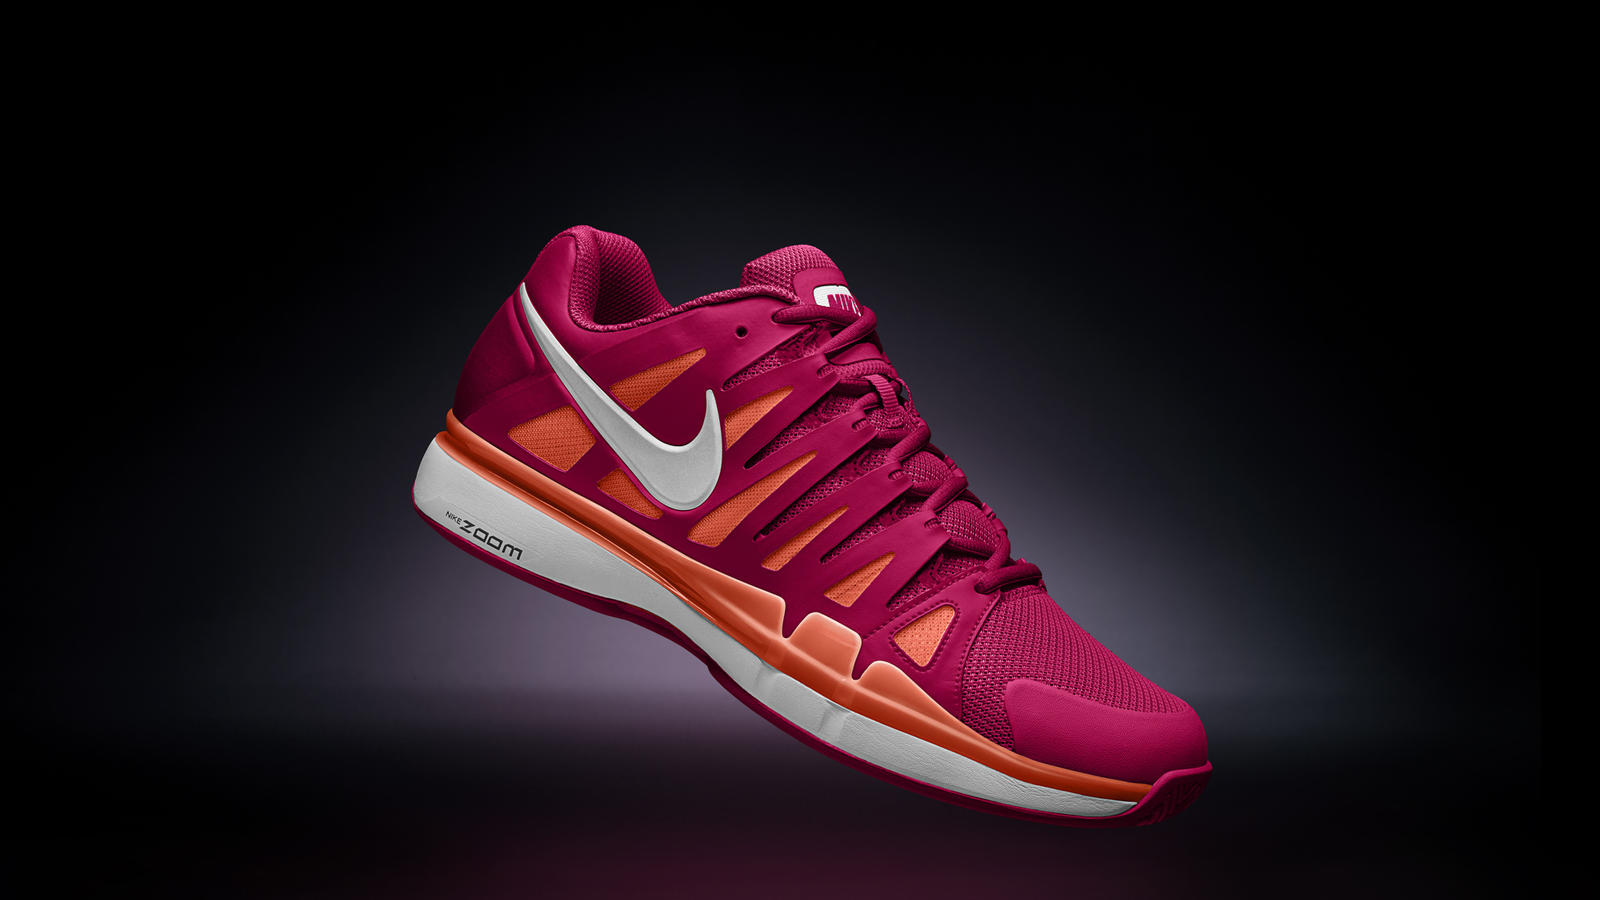 Sp13_TN_NIKEiD_Vapor9_Red